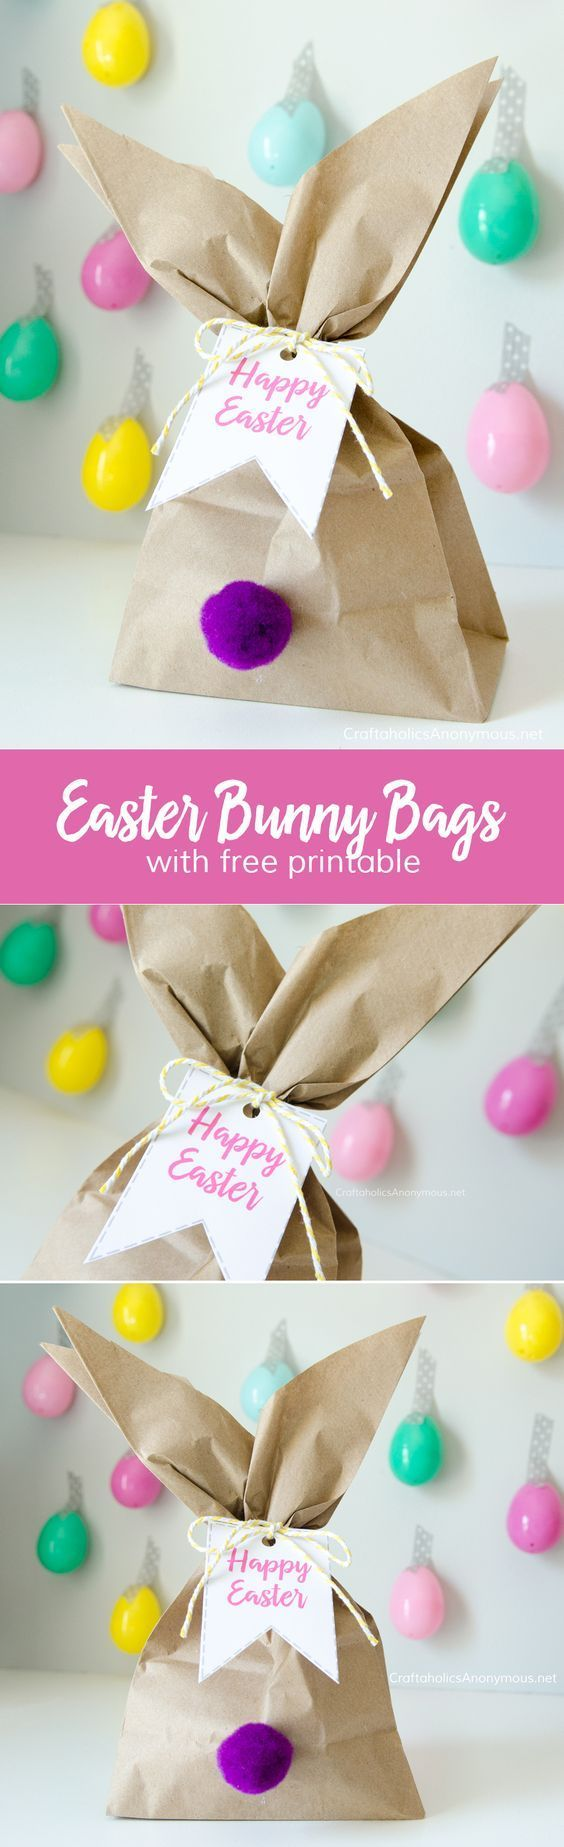 Easy easter bunny gift bags idea make great favors gifts decor easy easter bunny gift bags idea make great favors gifts decor negle Gallery